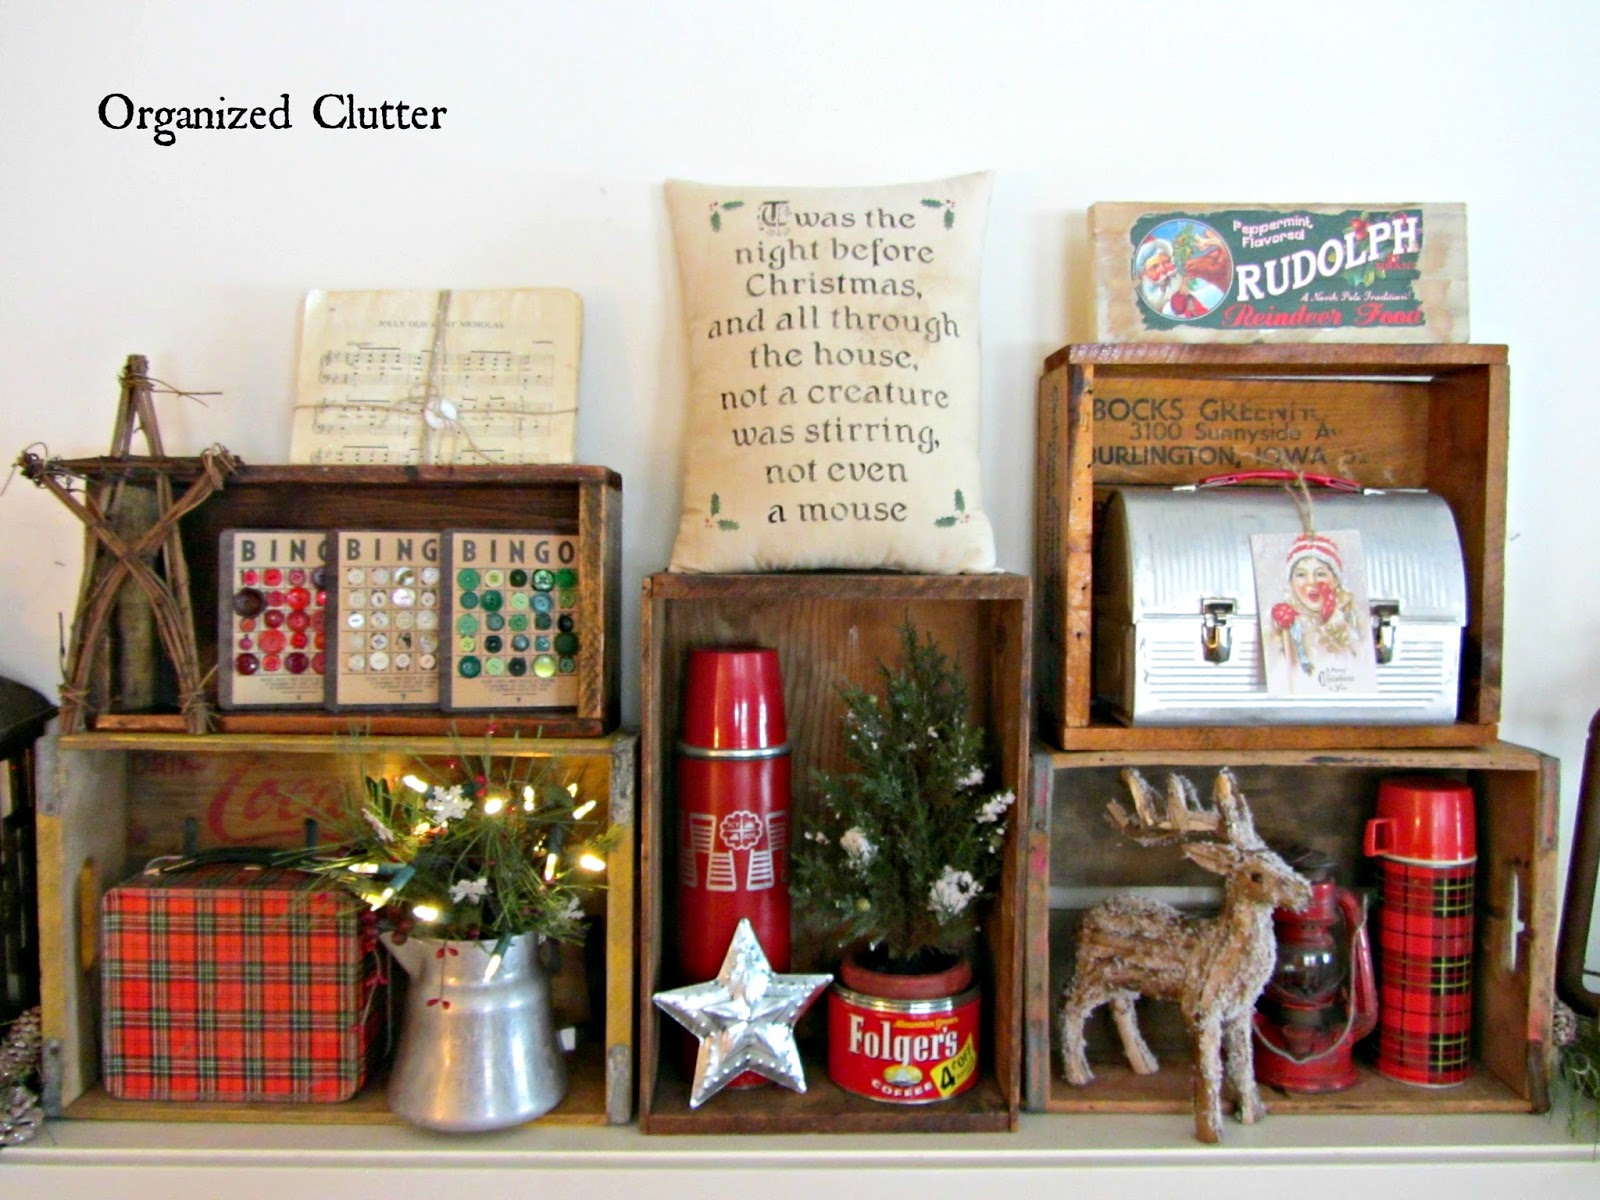 an organized cluttered rustic crate christmas mantel organized clutter - Decorating Crates For Christmas